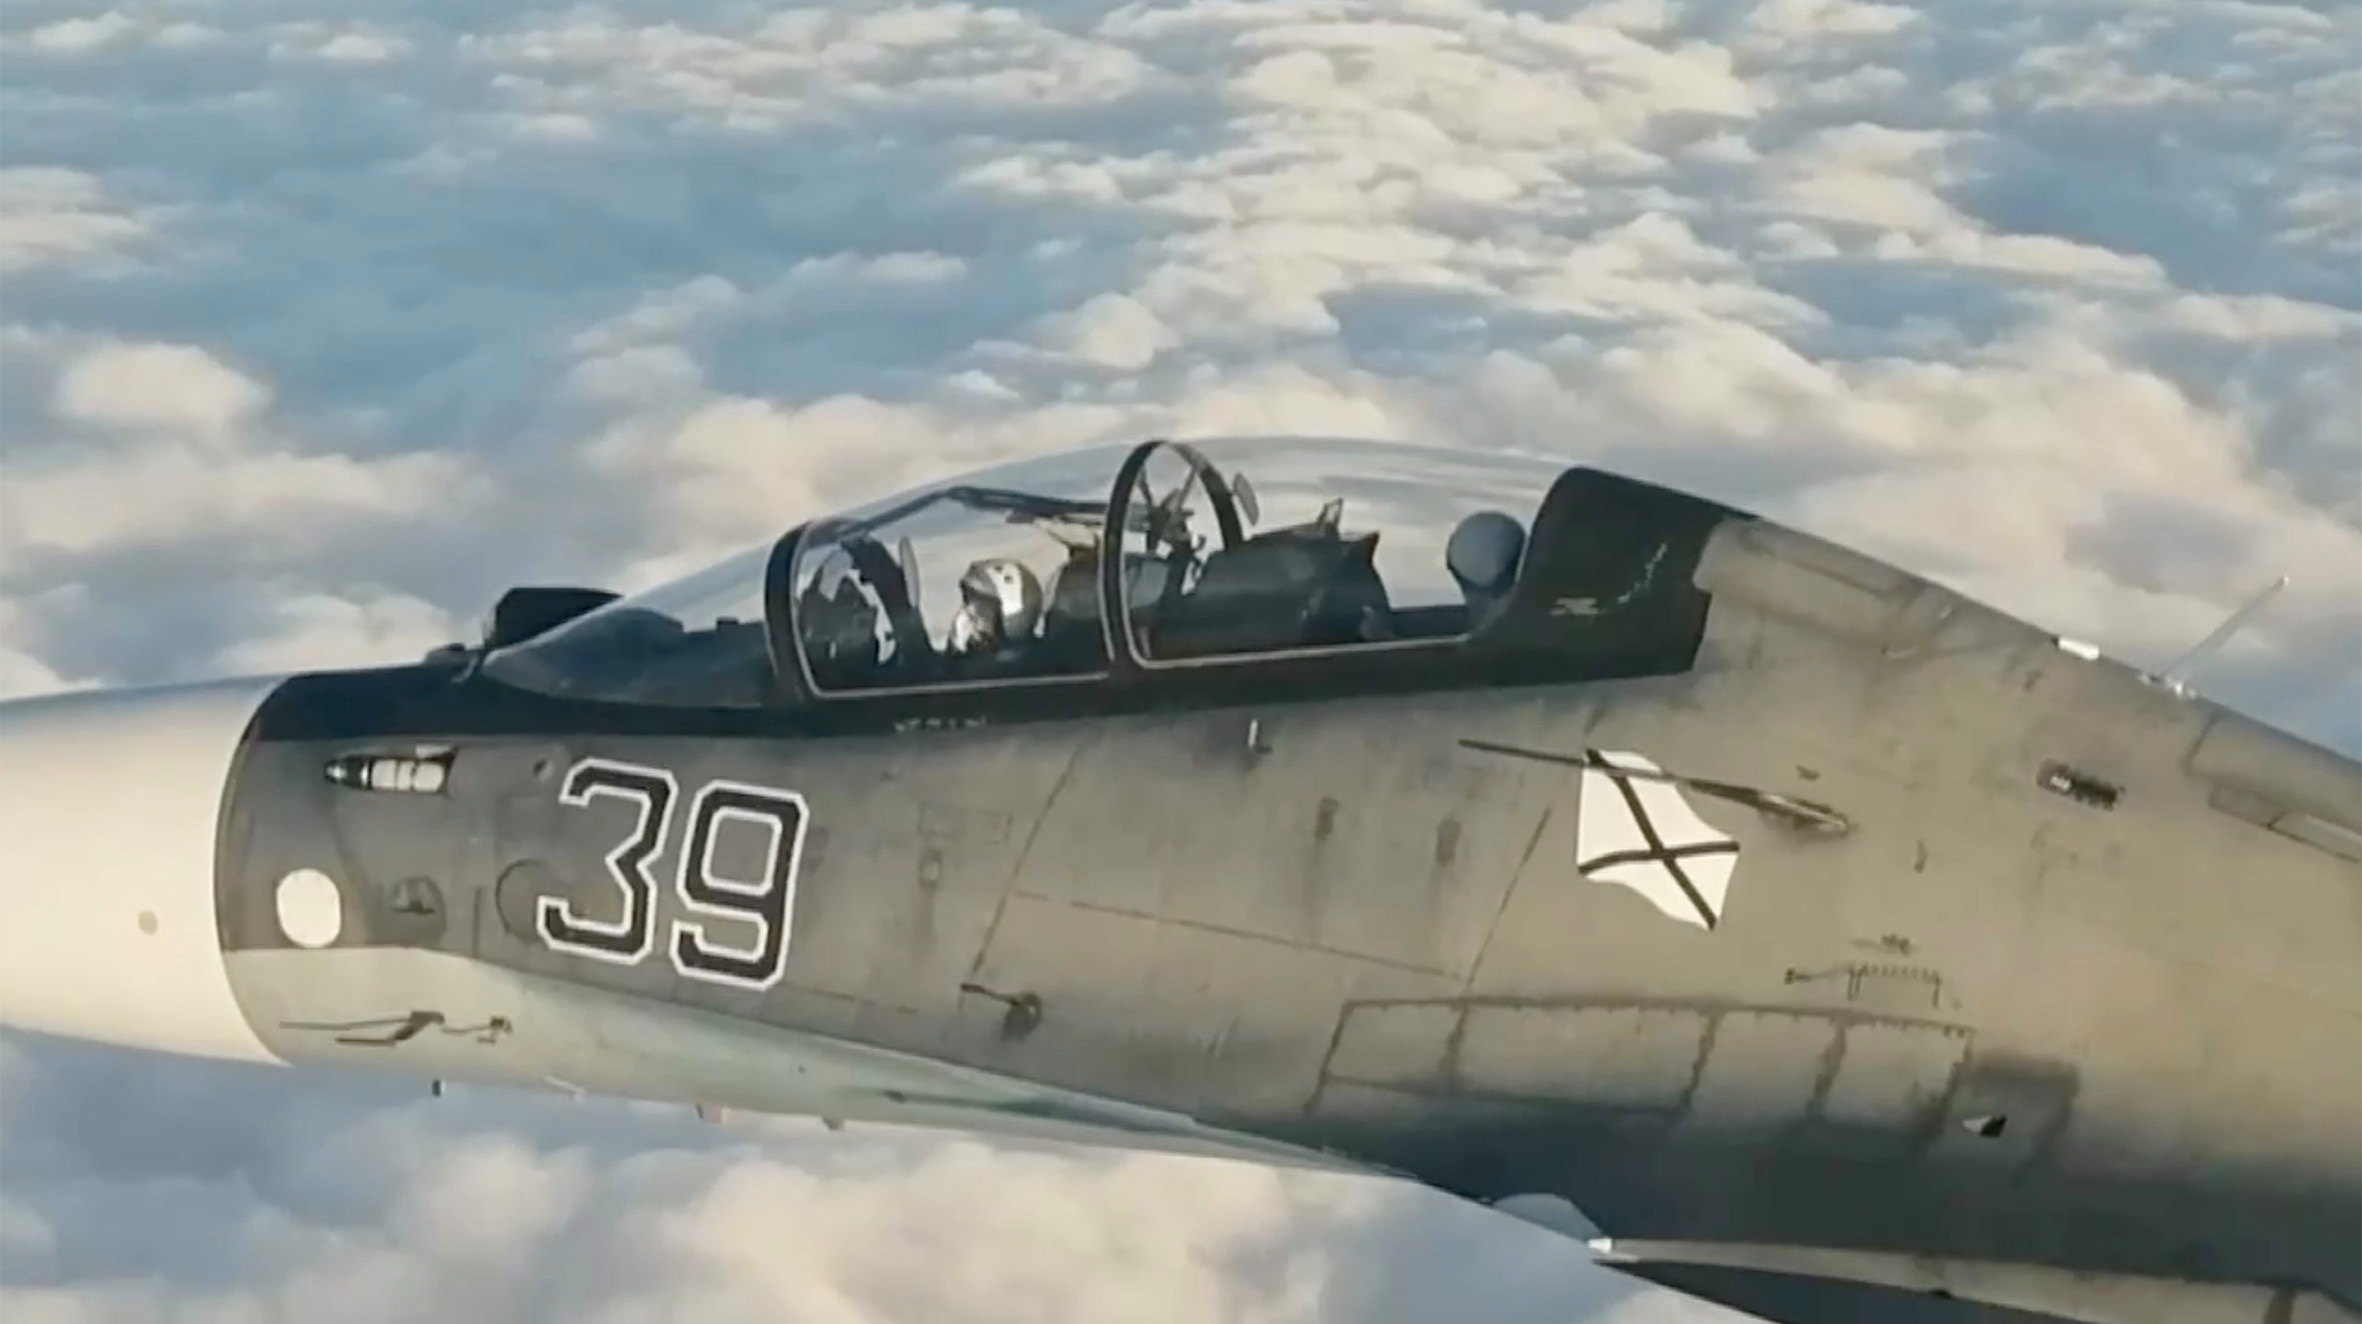 Two Su-30s were dispatched to identify the aircraft and prevent it entering Russian airspace, according to the Russians